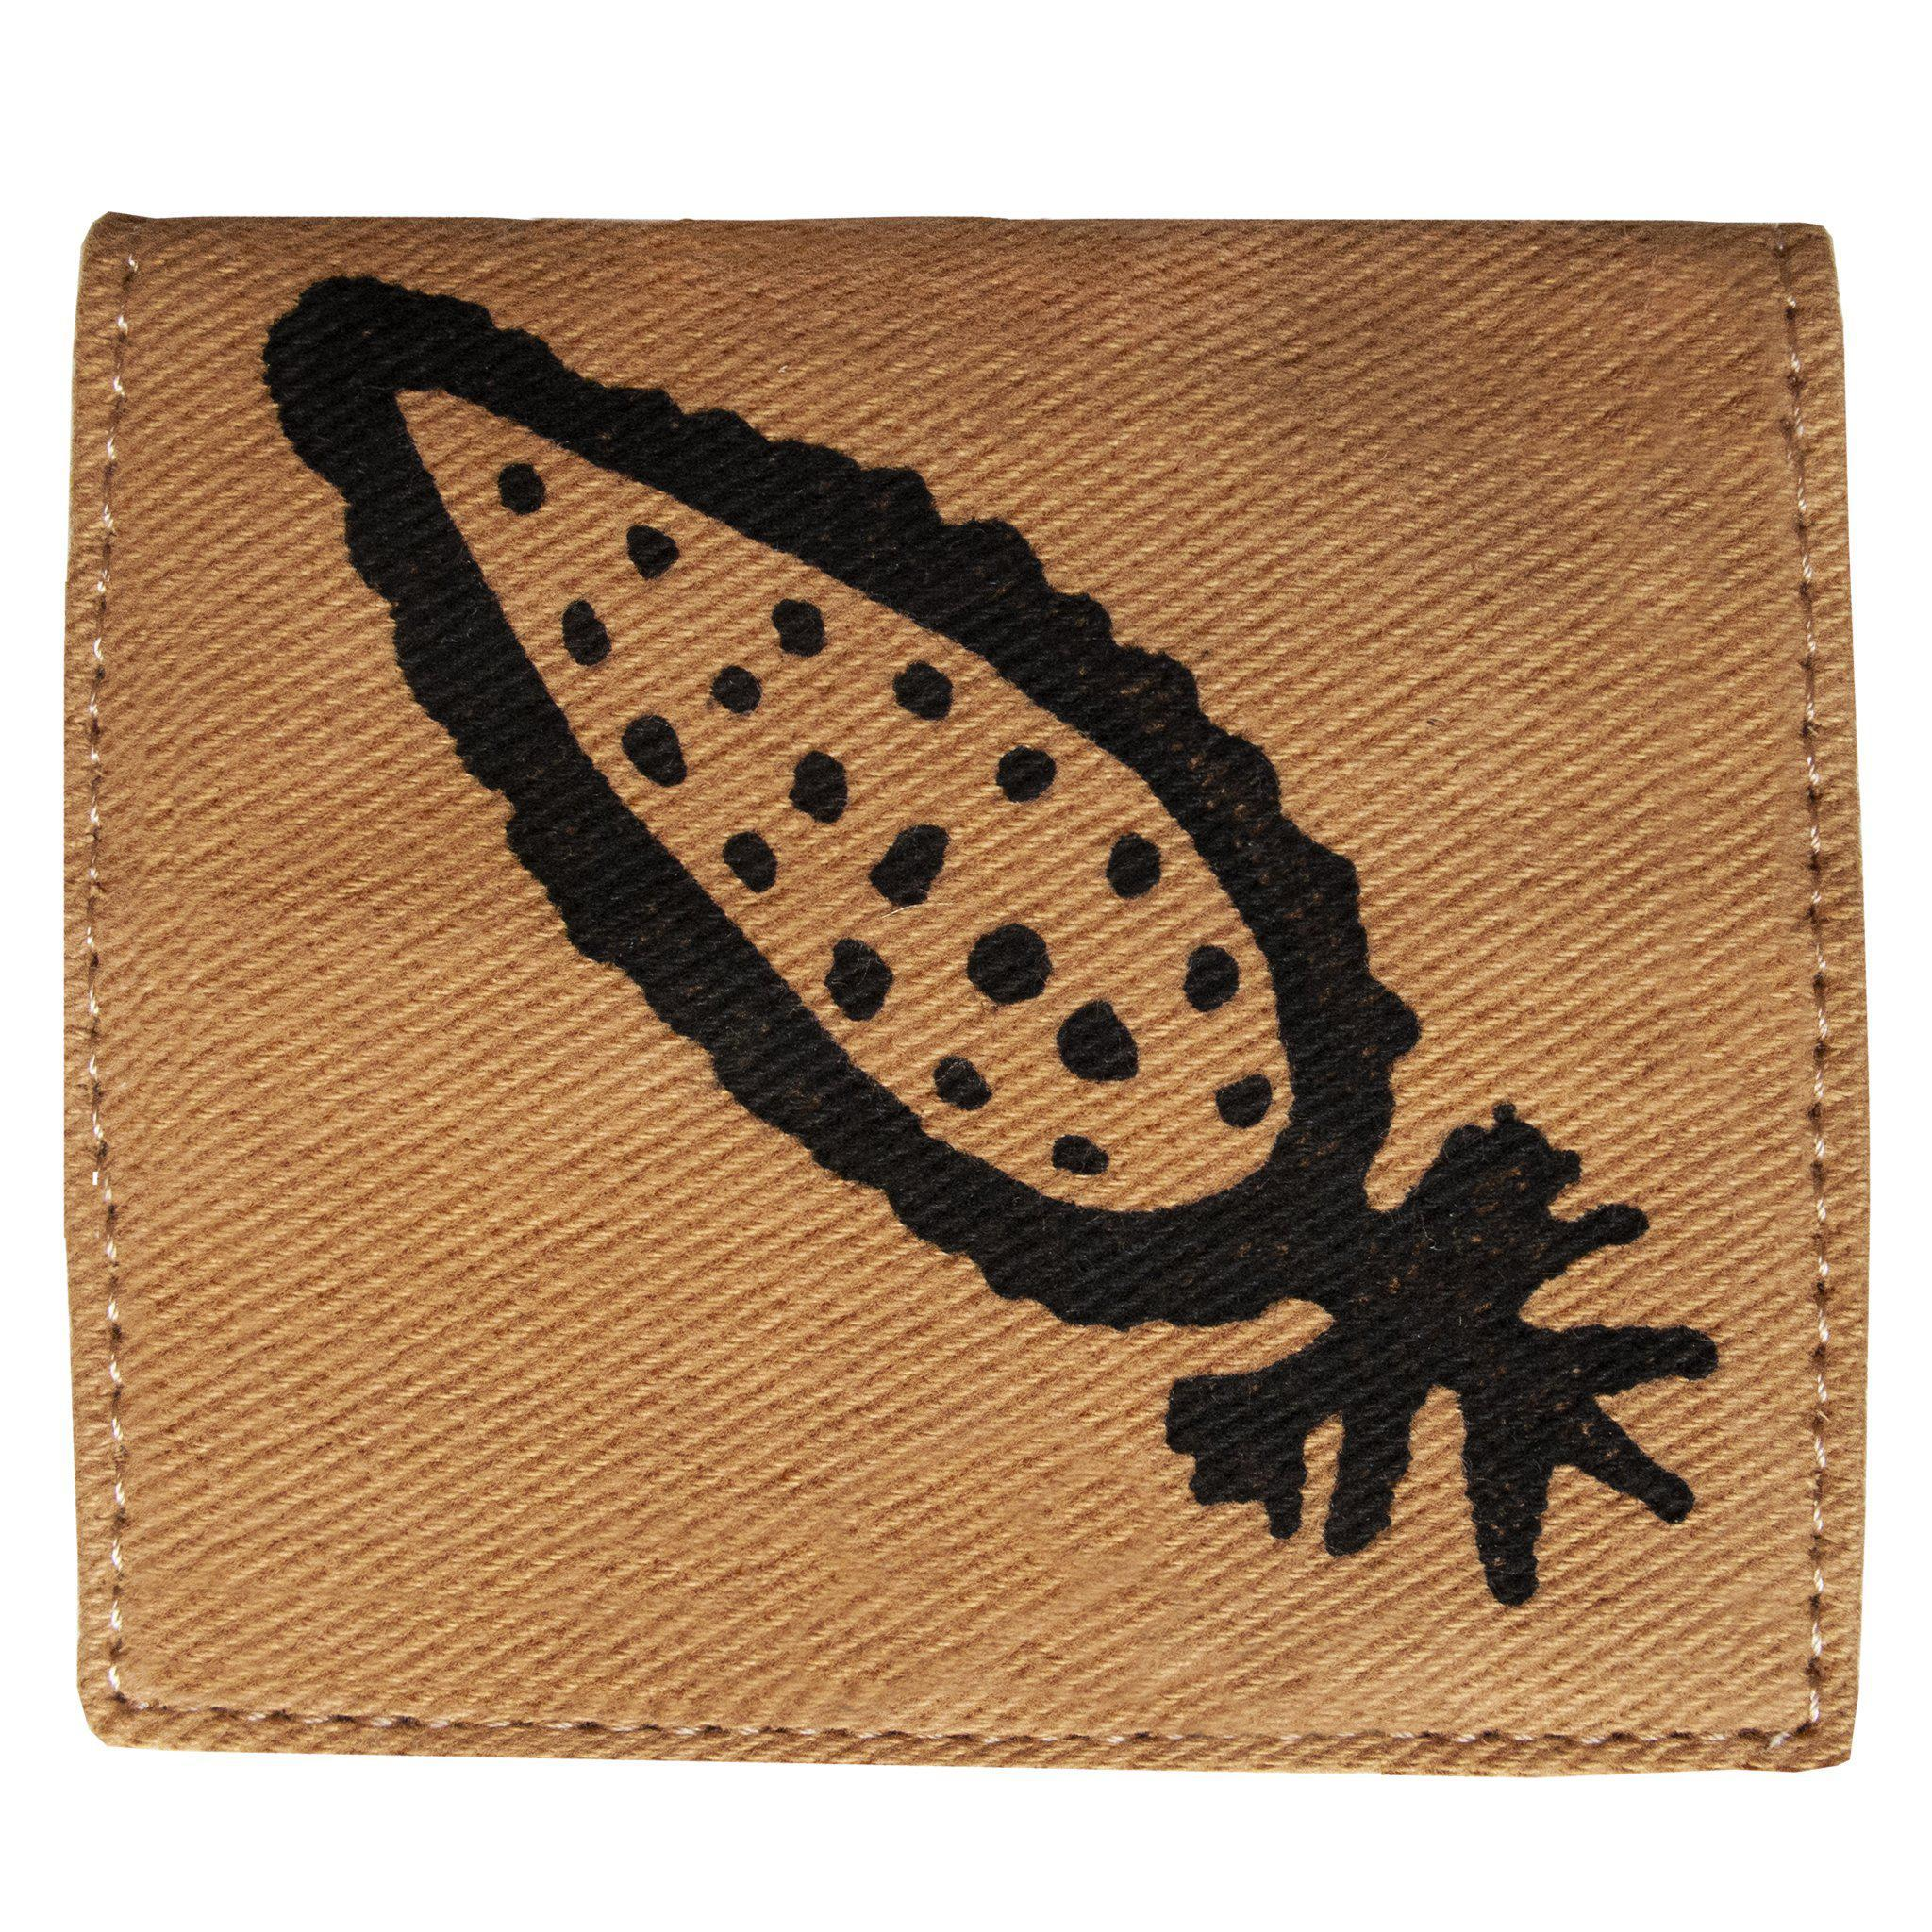 Brown 'Corn' cardholder, wallet - Devrim Studio